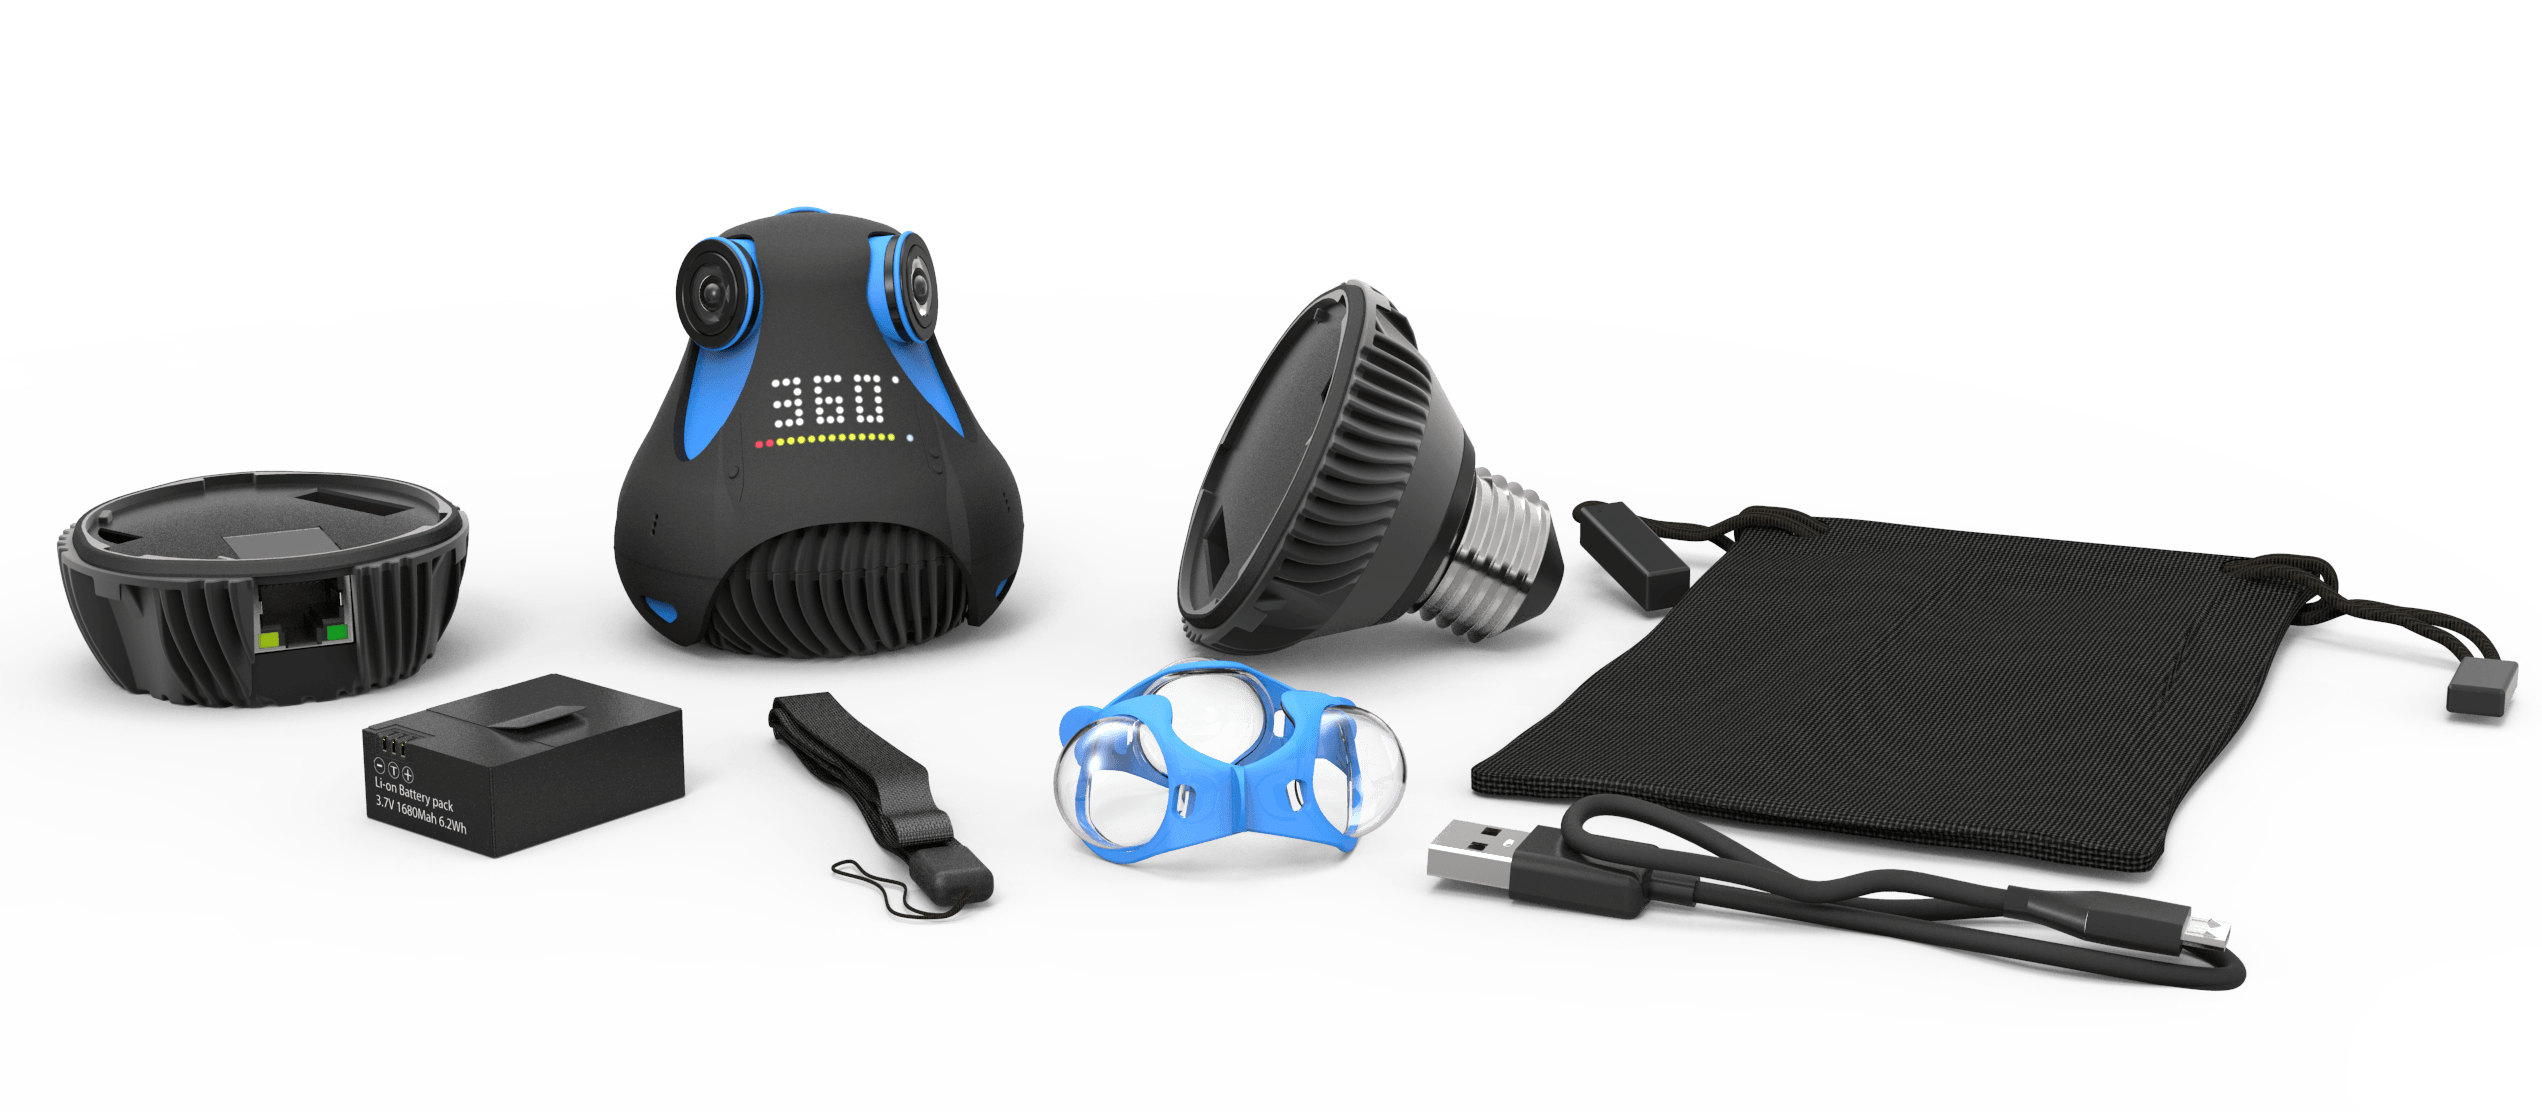 360cam-and-accessories